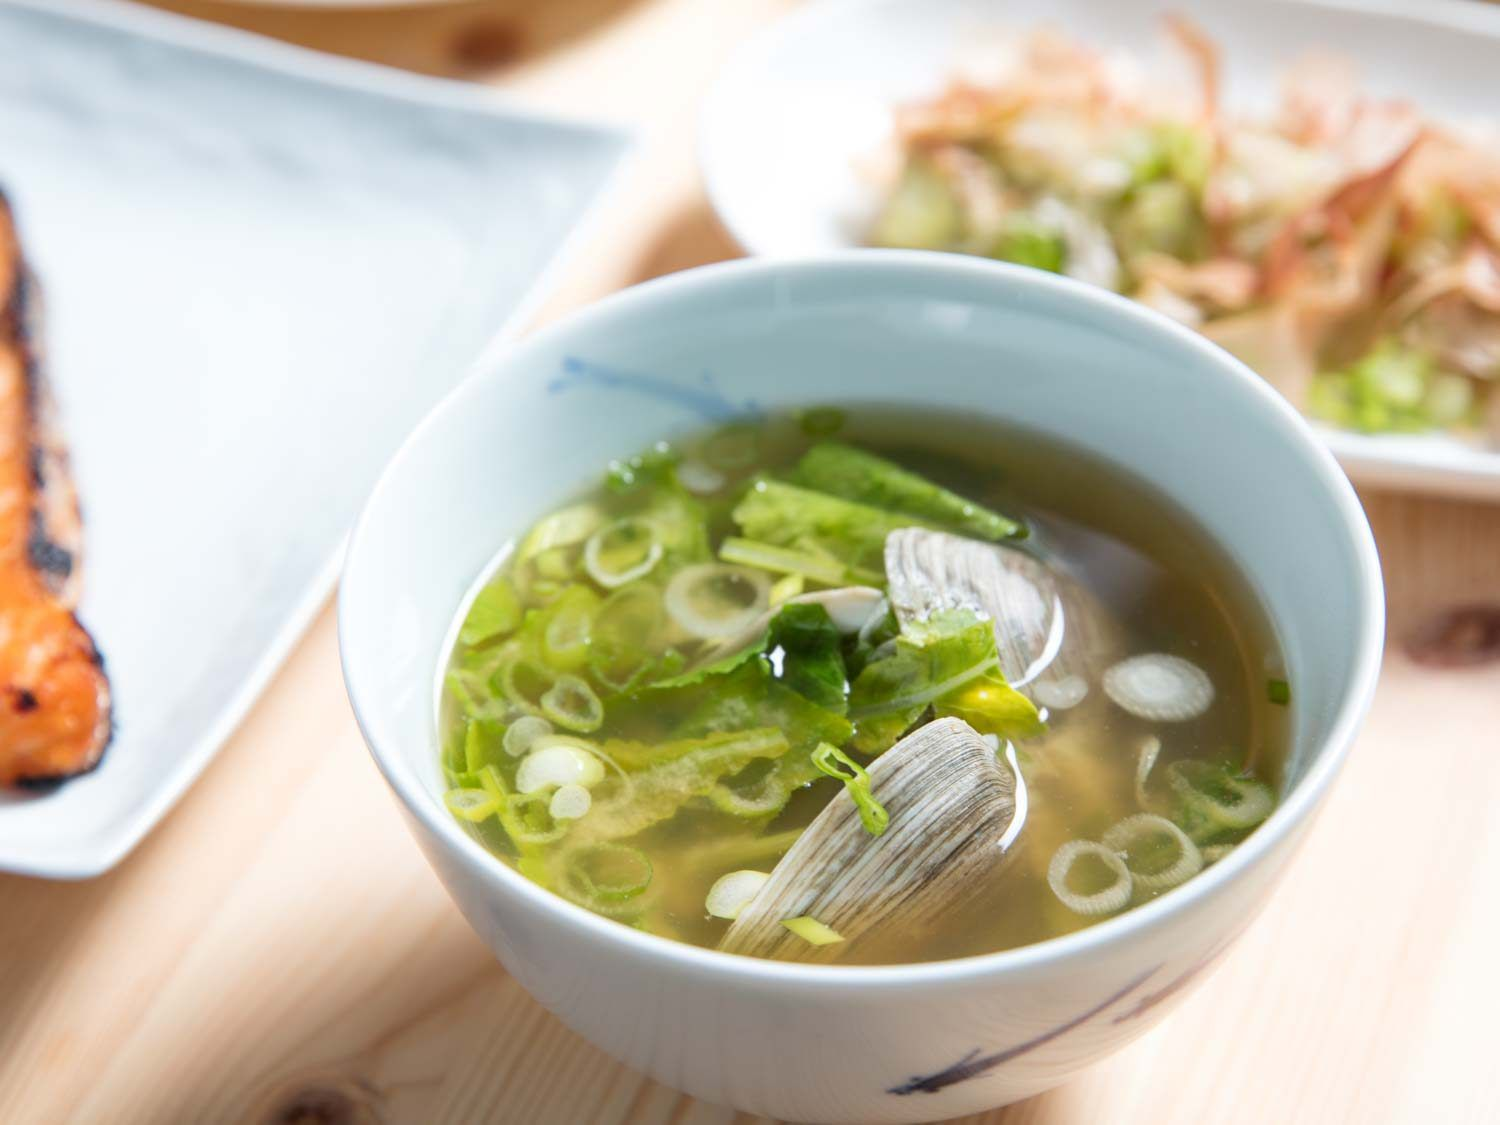 Bowl of miso soup with clams and scallions